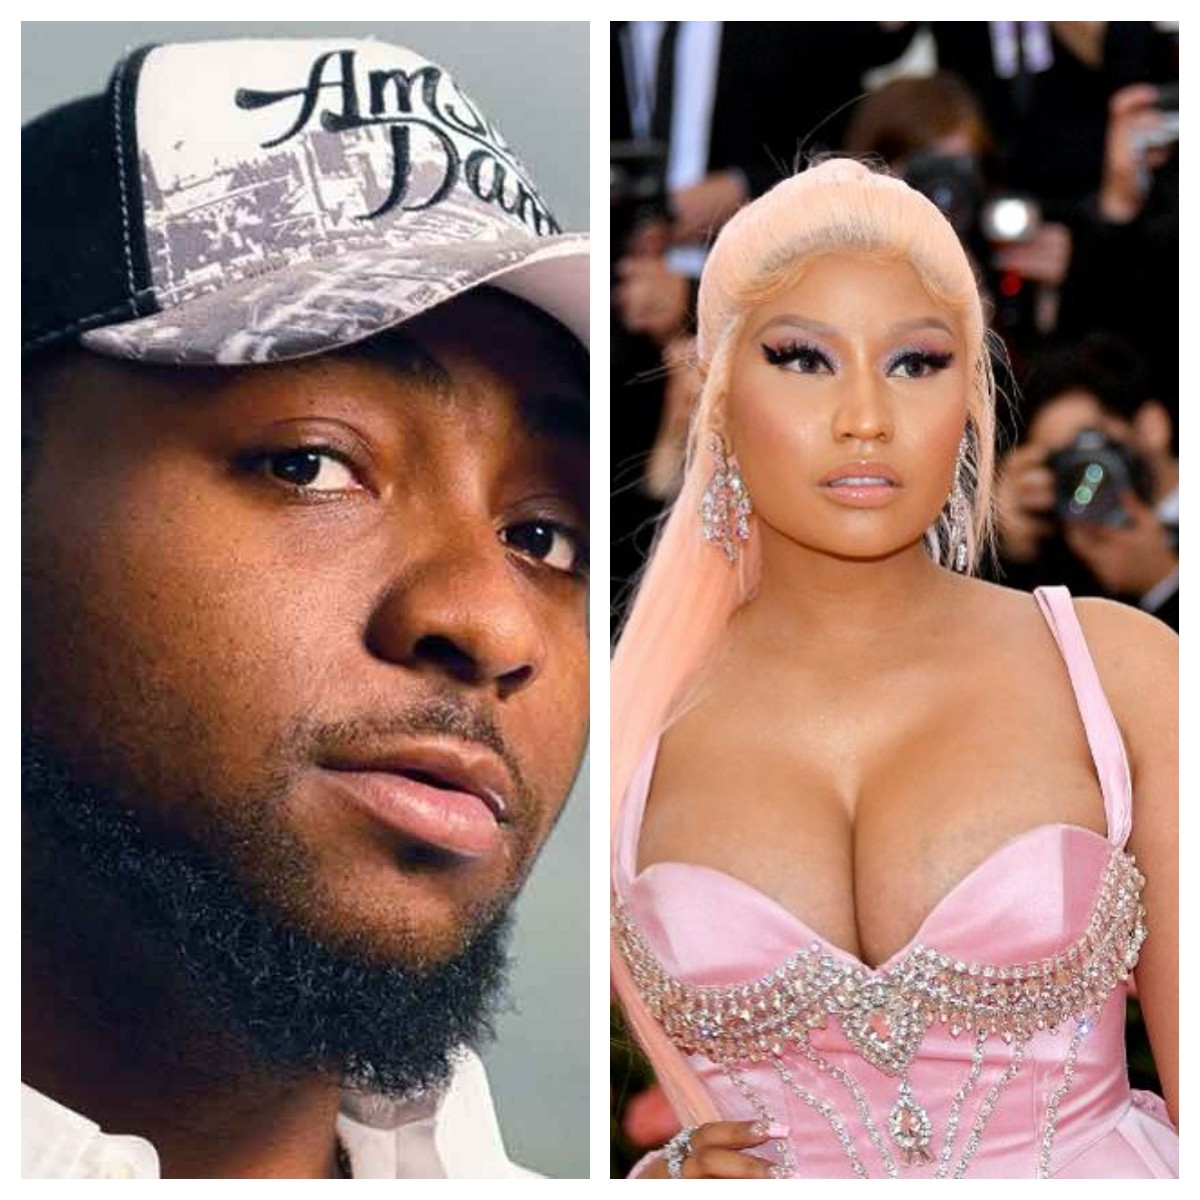 Davido and Nicki Minaj collaboration